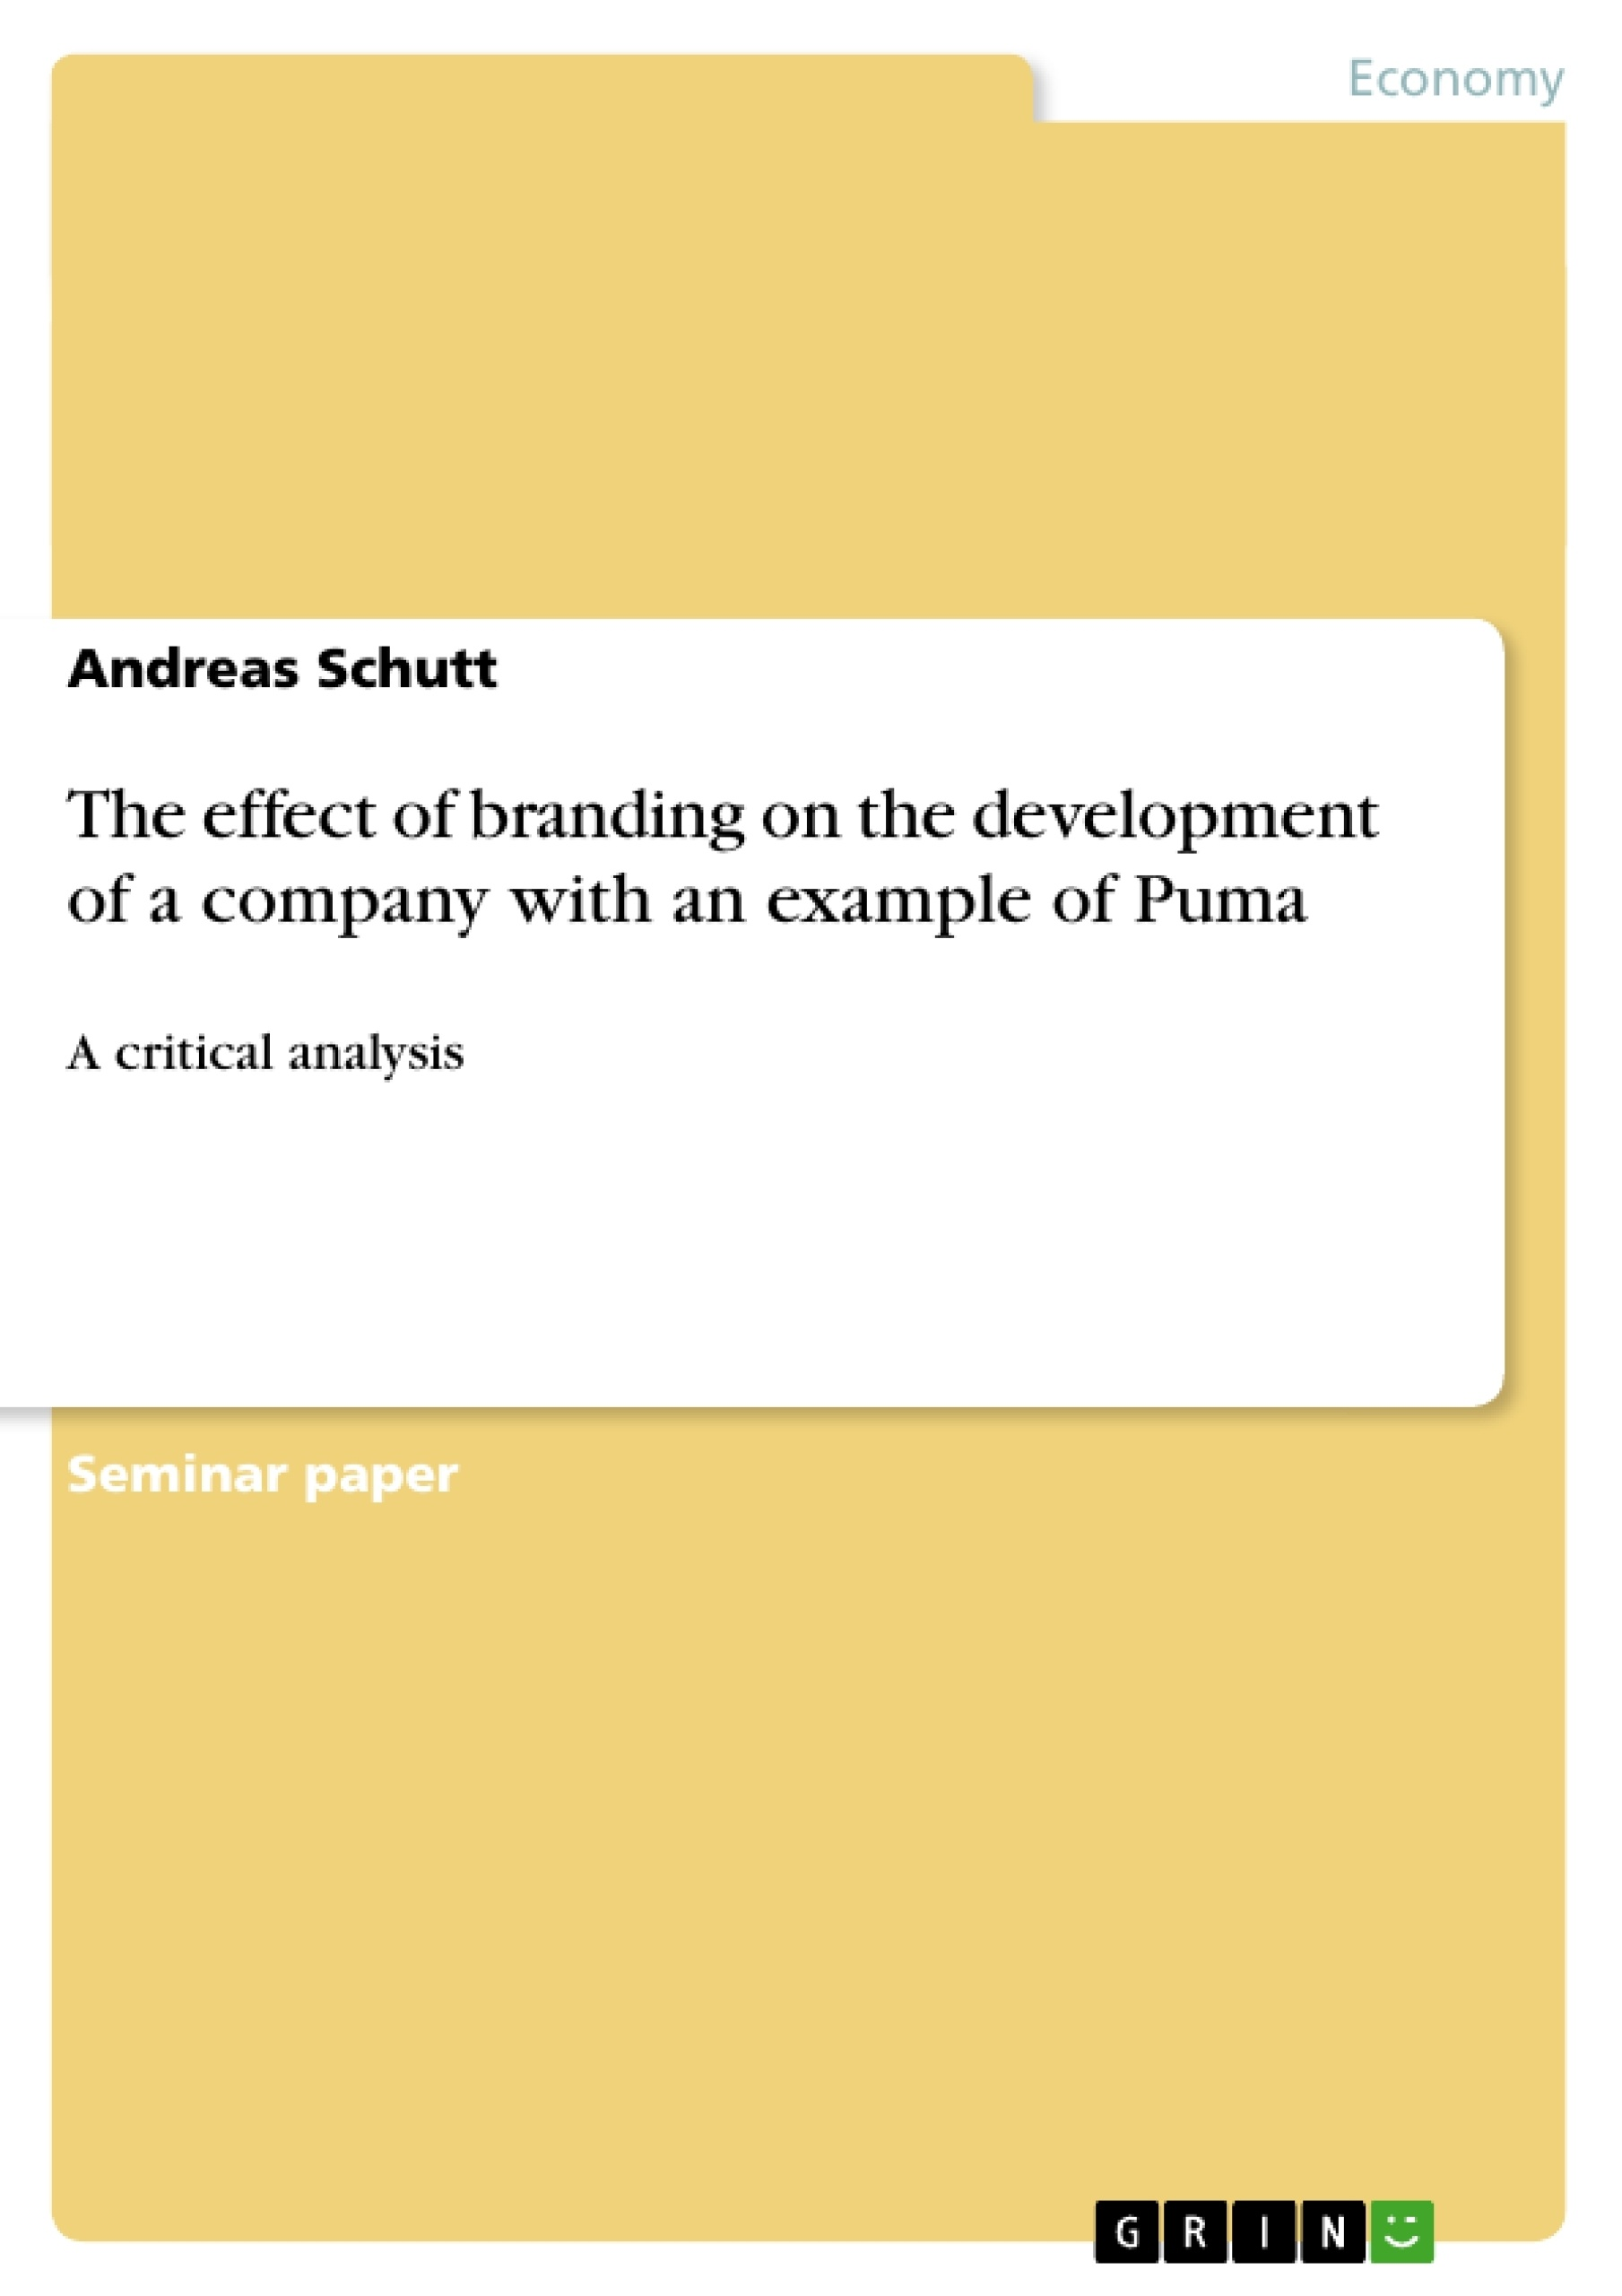 Title: The effect of branding on the development of a company with an example of Puma